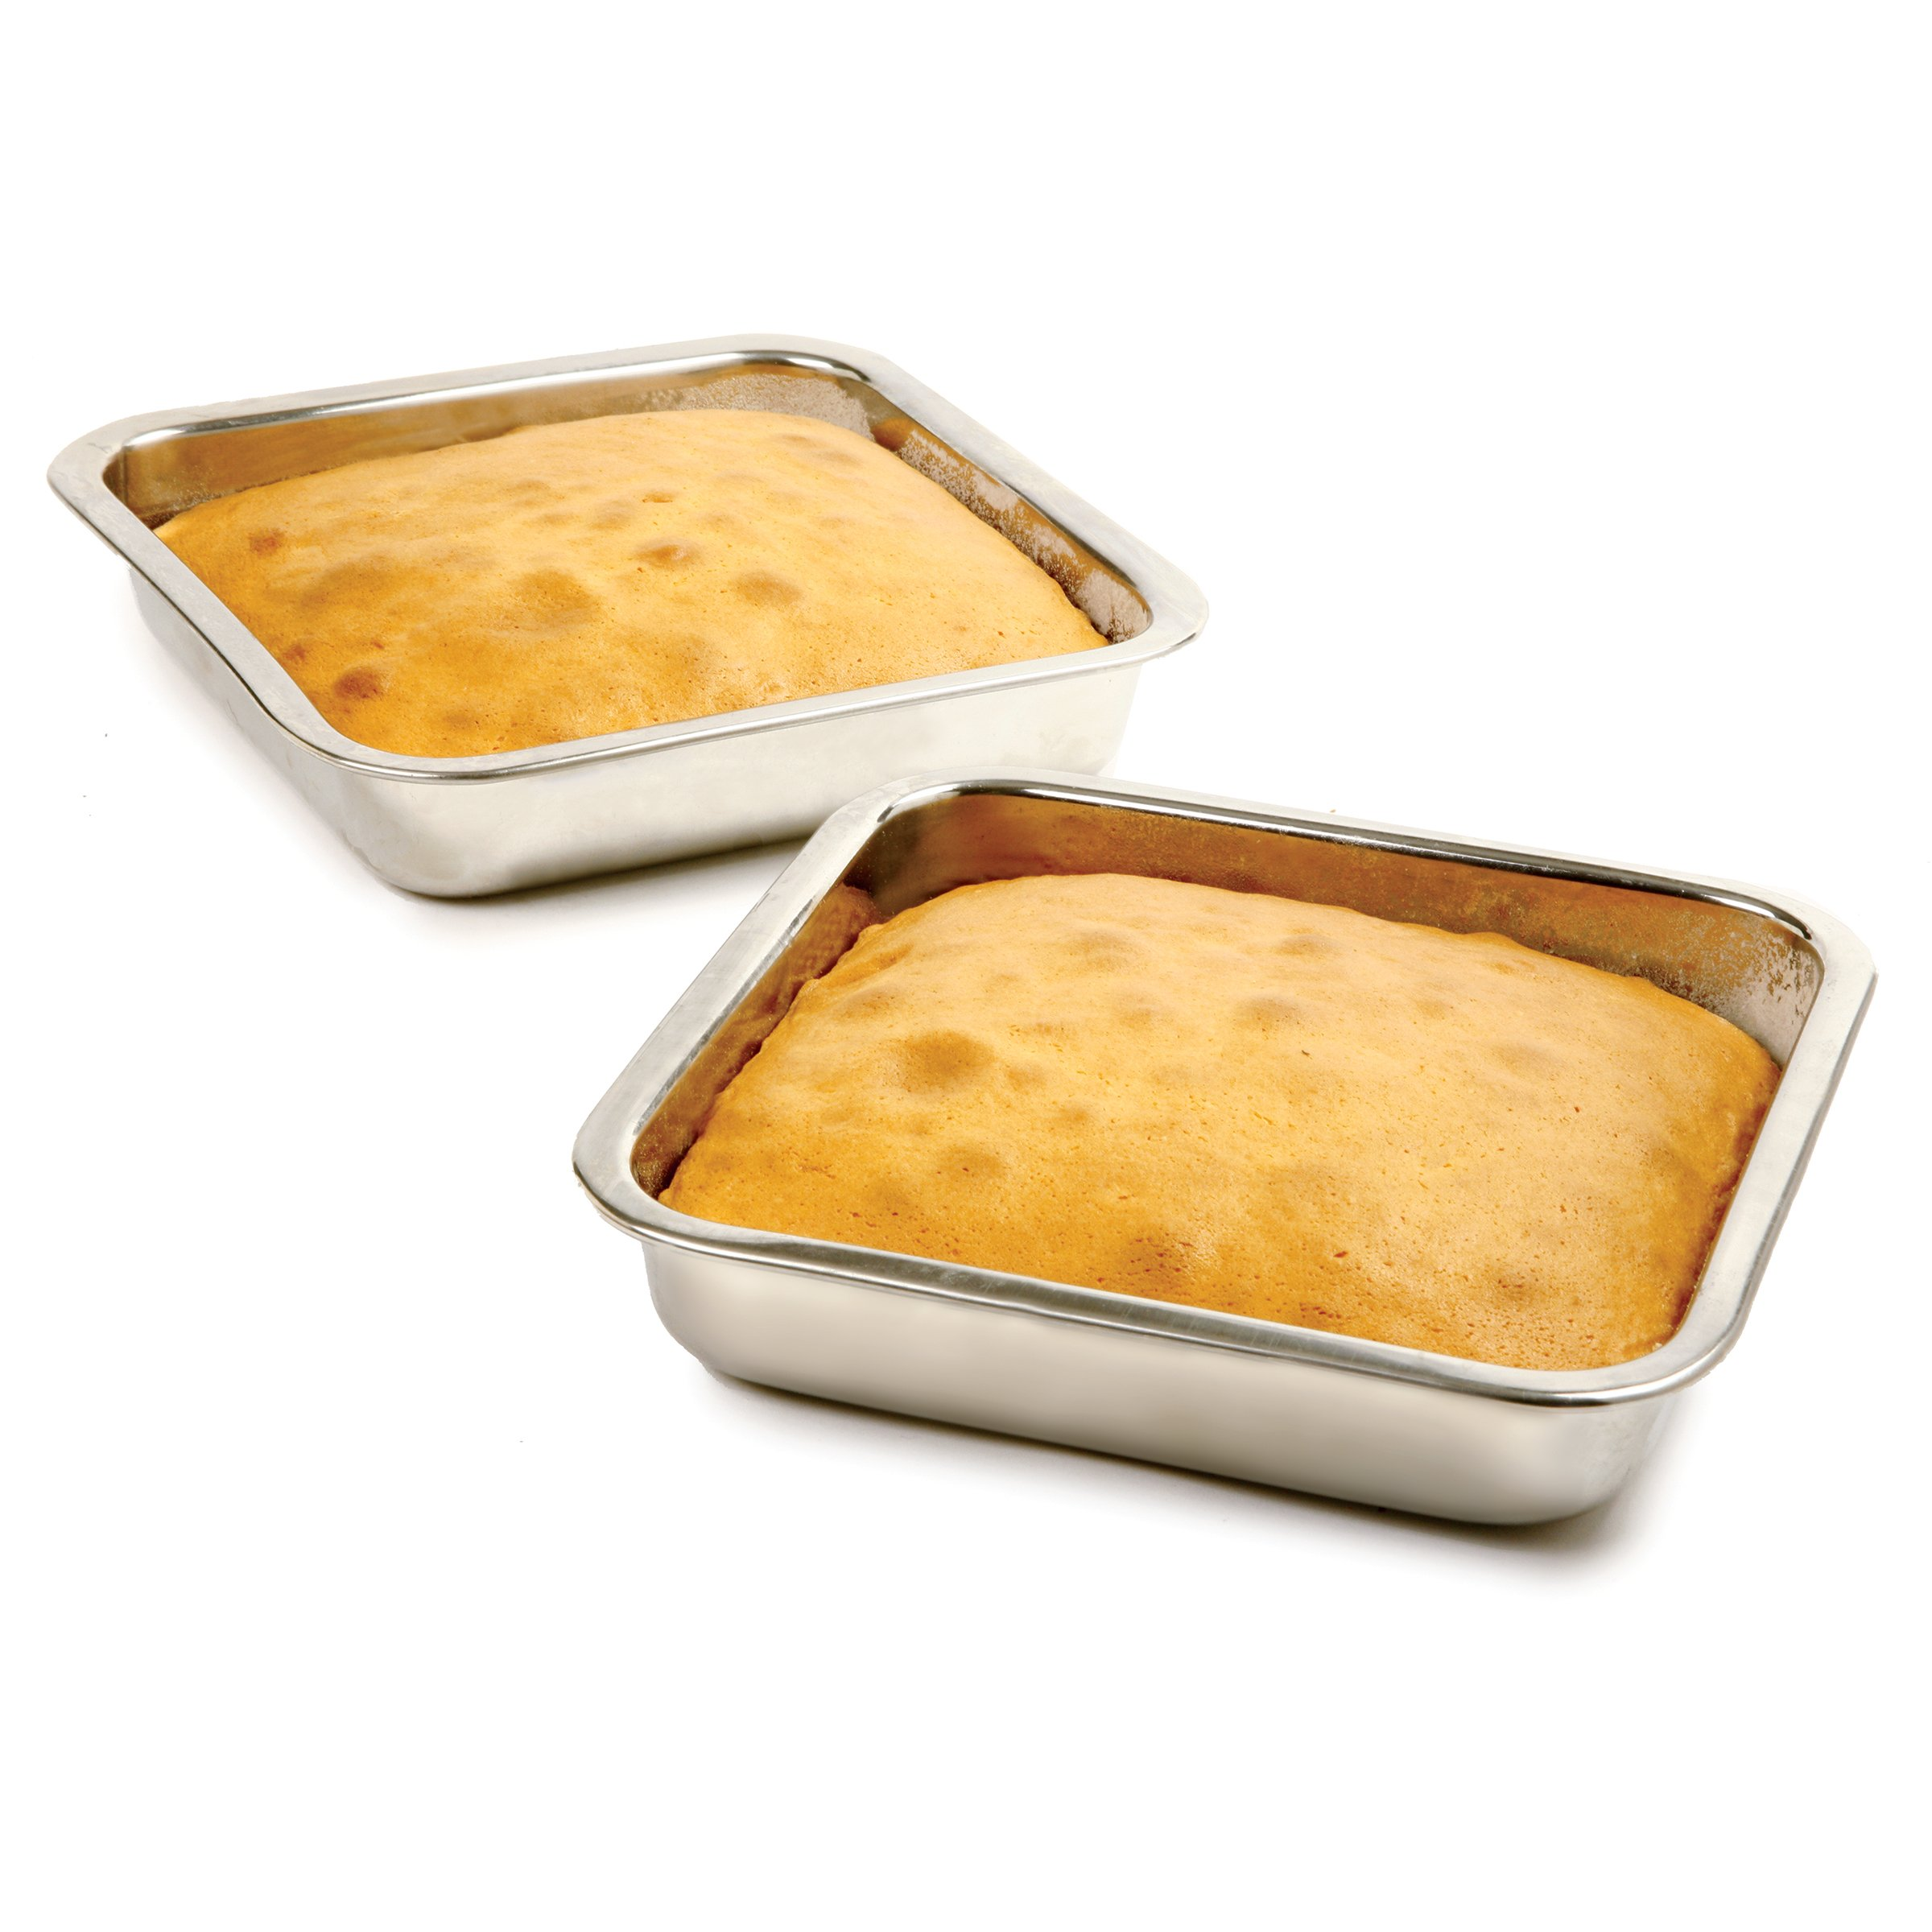 Norpro 8 Inch Stainless Steel Cake Pan, Square by Norpro